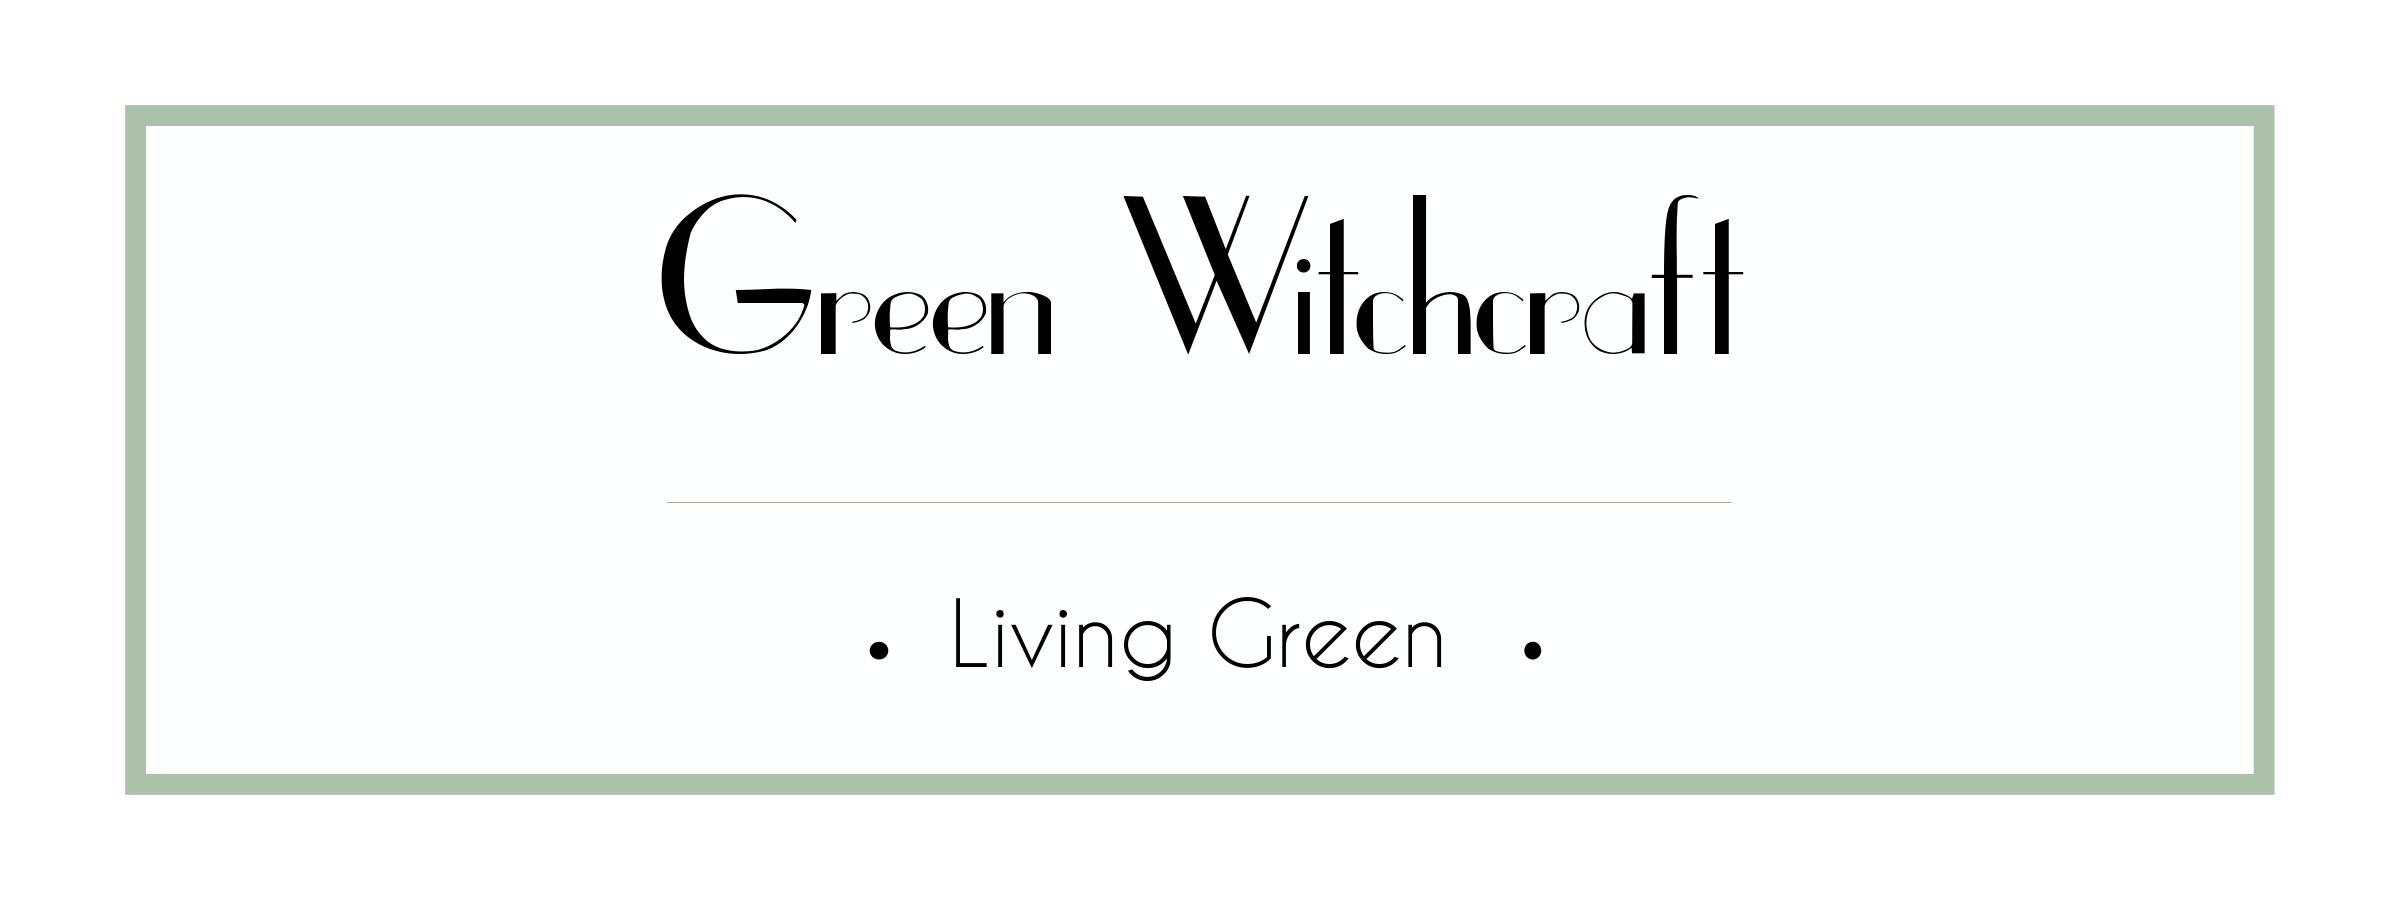 Green Witchcraft Course - Living Green